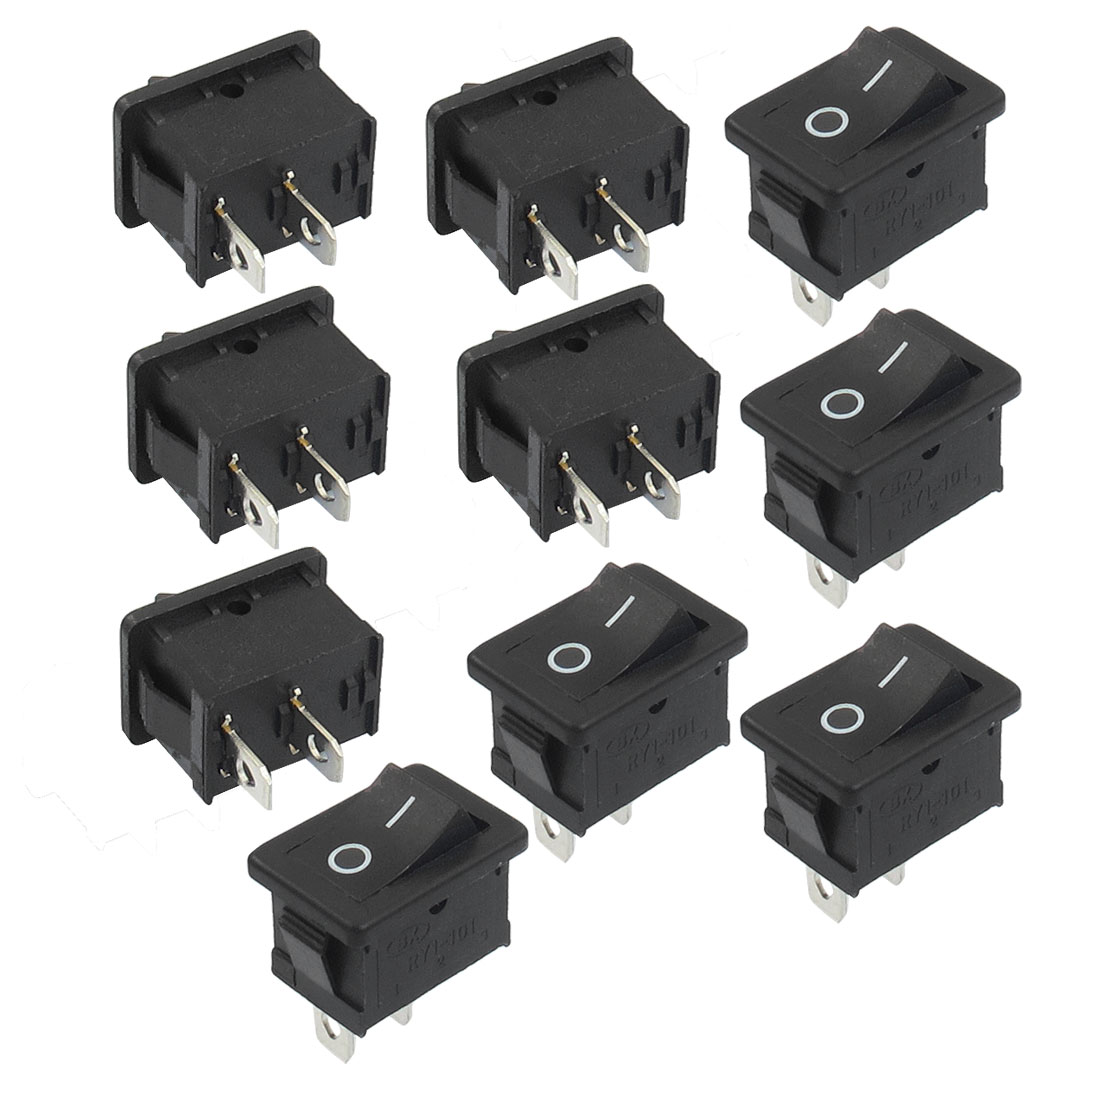 10 Pcs SPST Black On/Off Rocker Switch AC 250V/6A 125V/10A